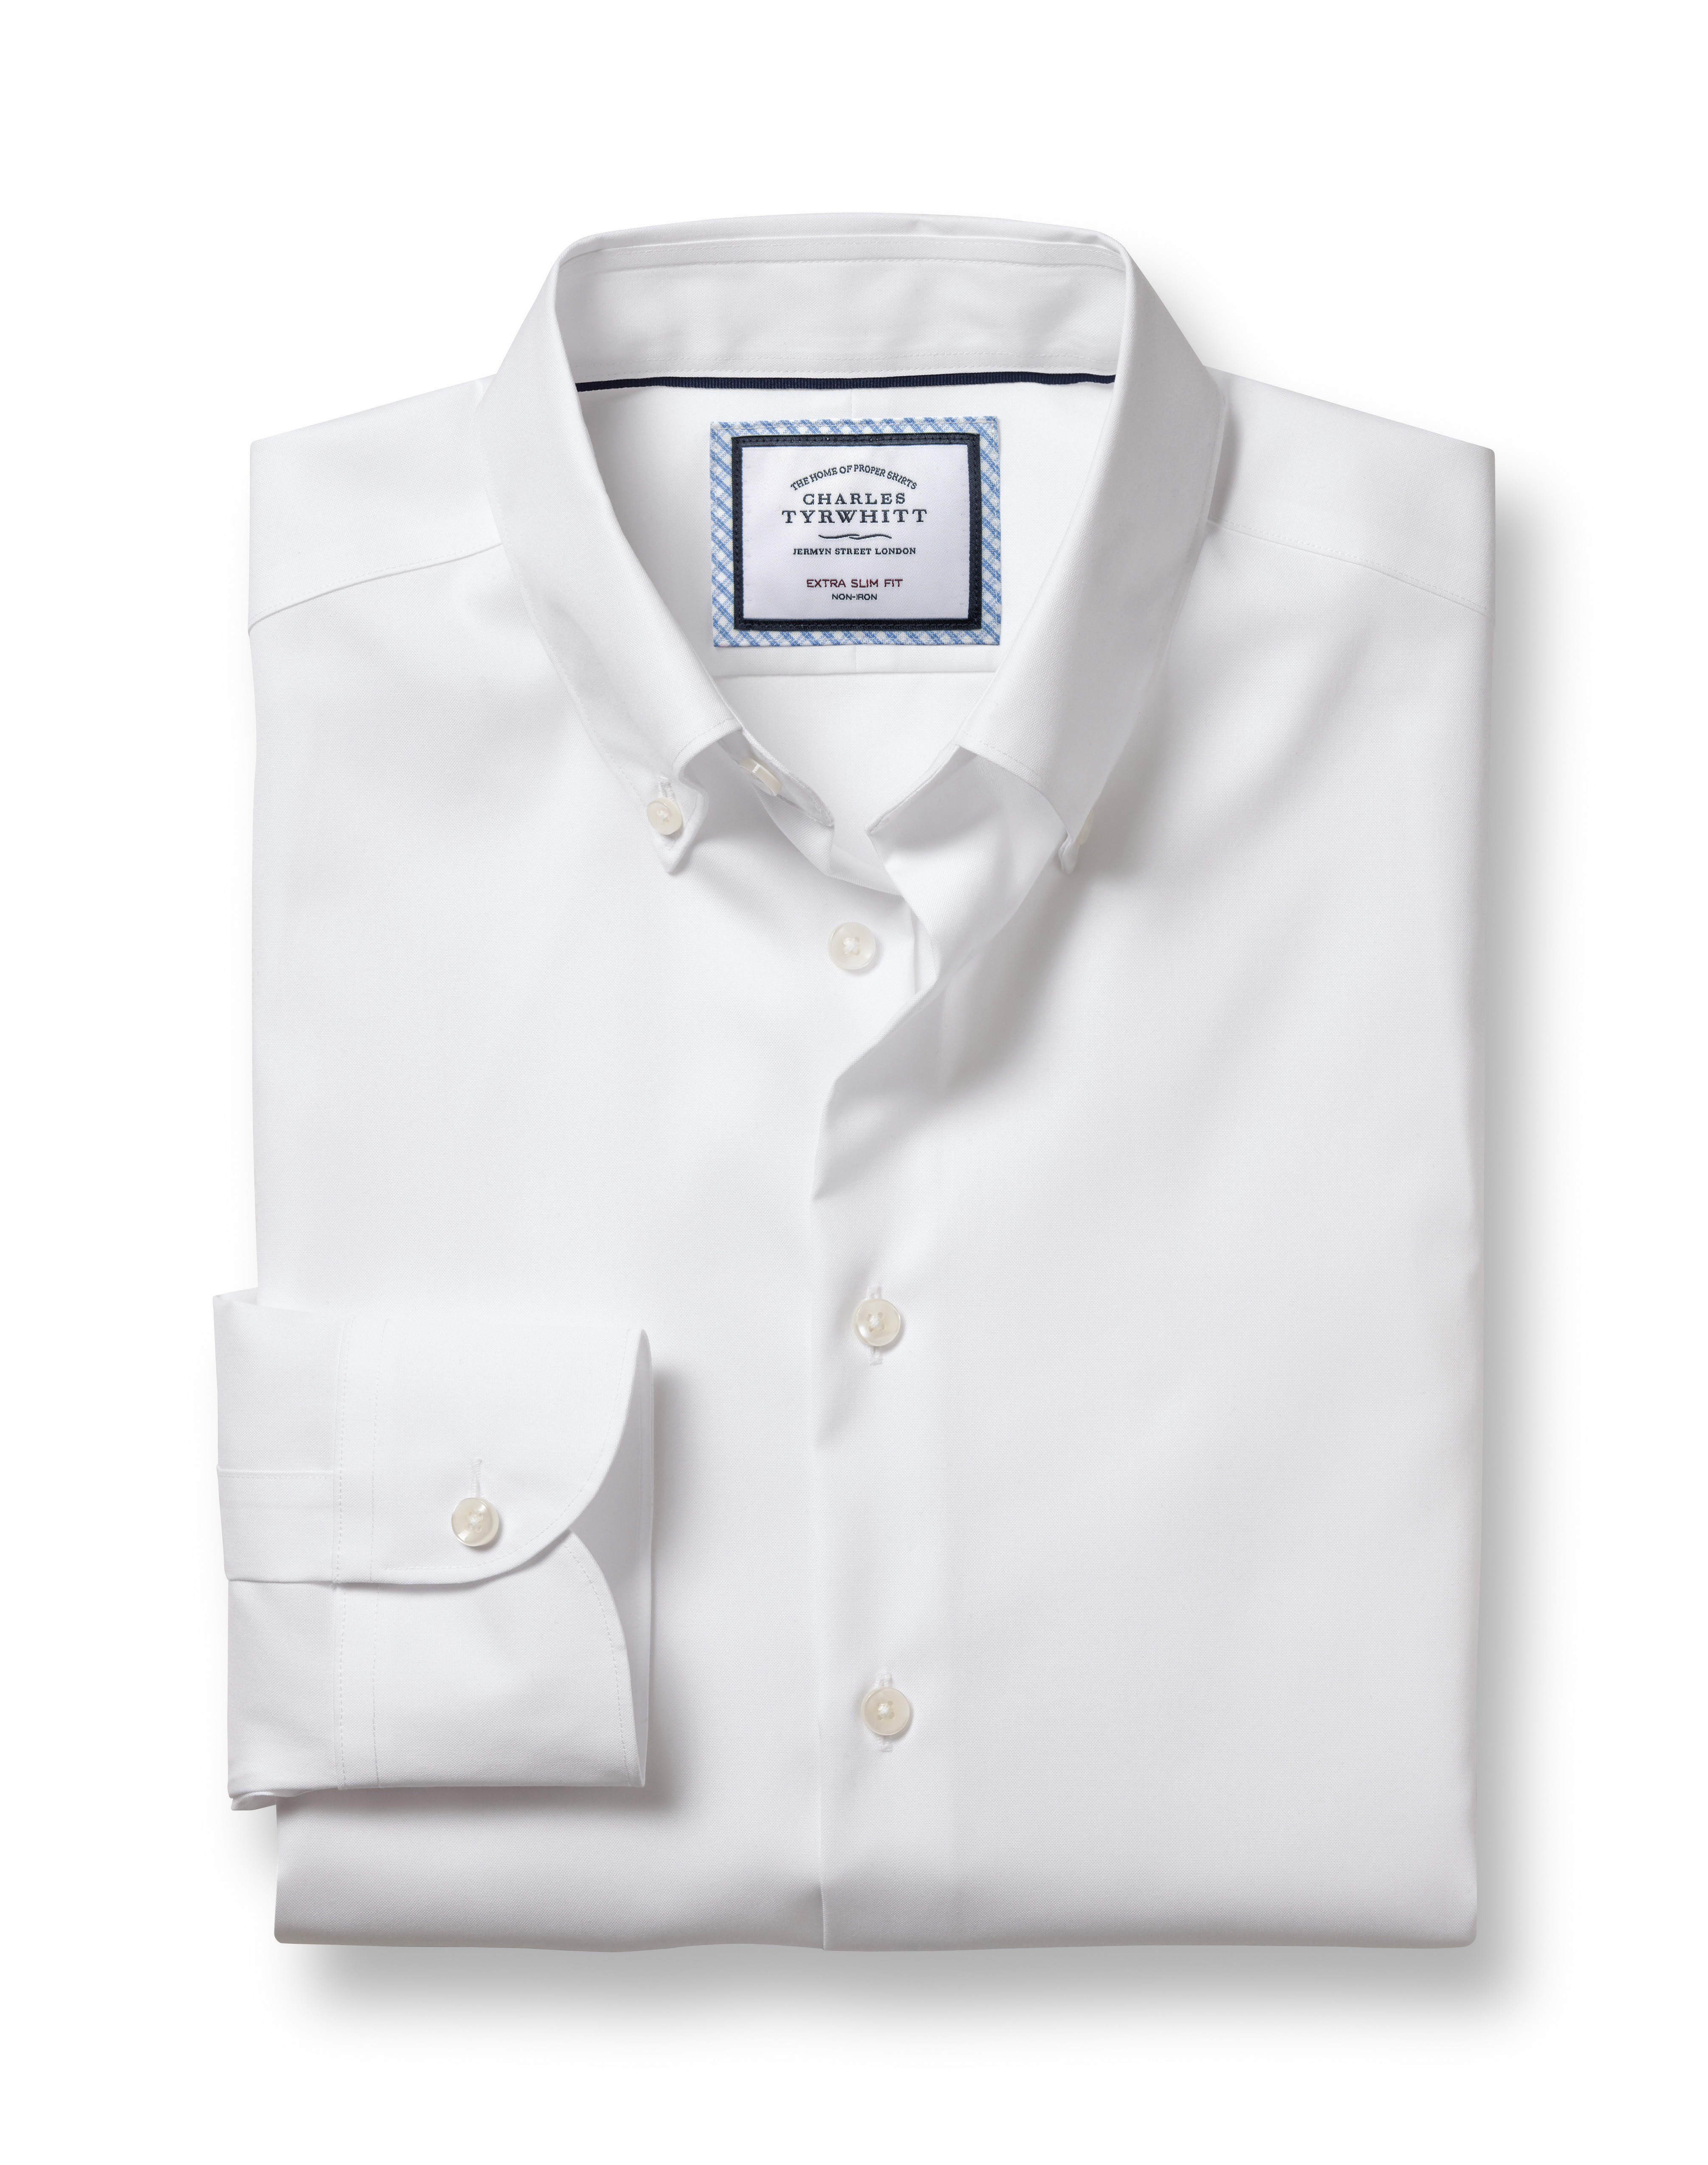 Classic Fit Button-Down Business Casual Non-Iron White Cotton Formal Shirt Single Cuff Size 17.5/38